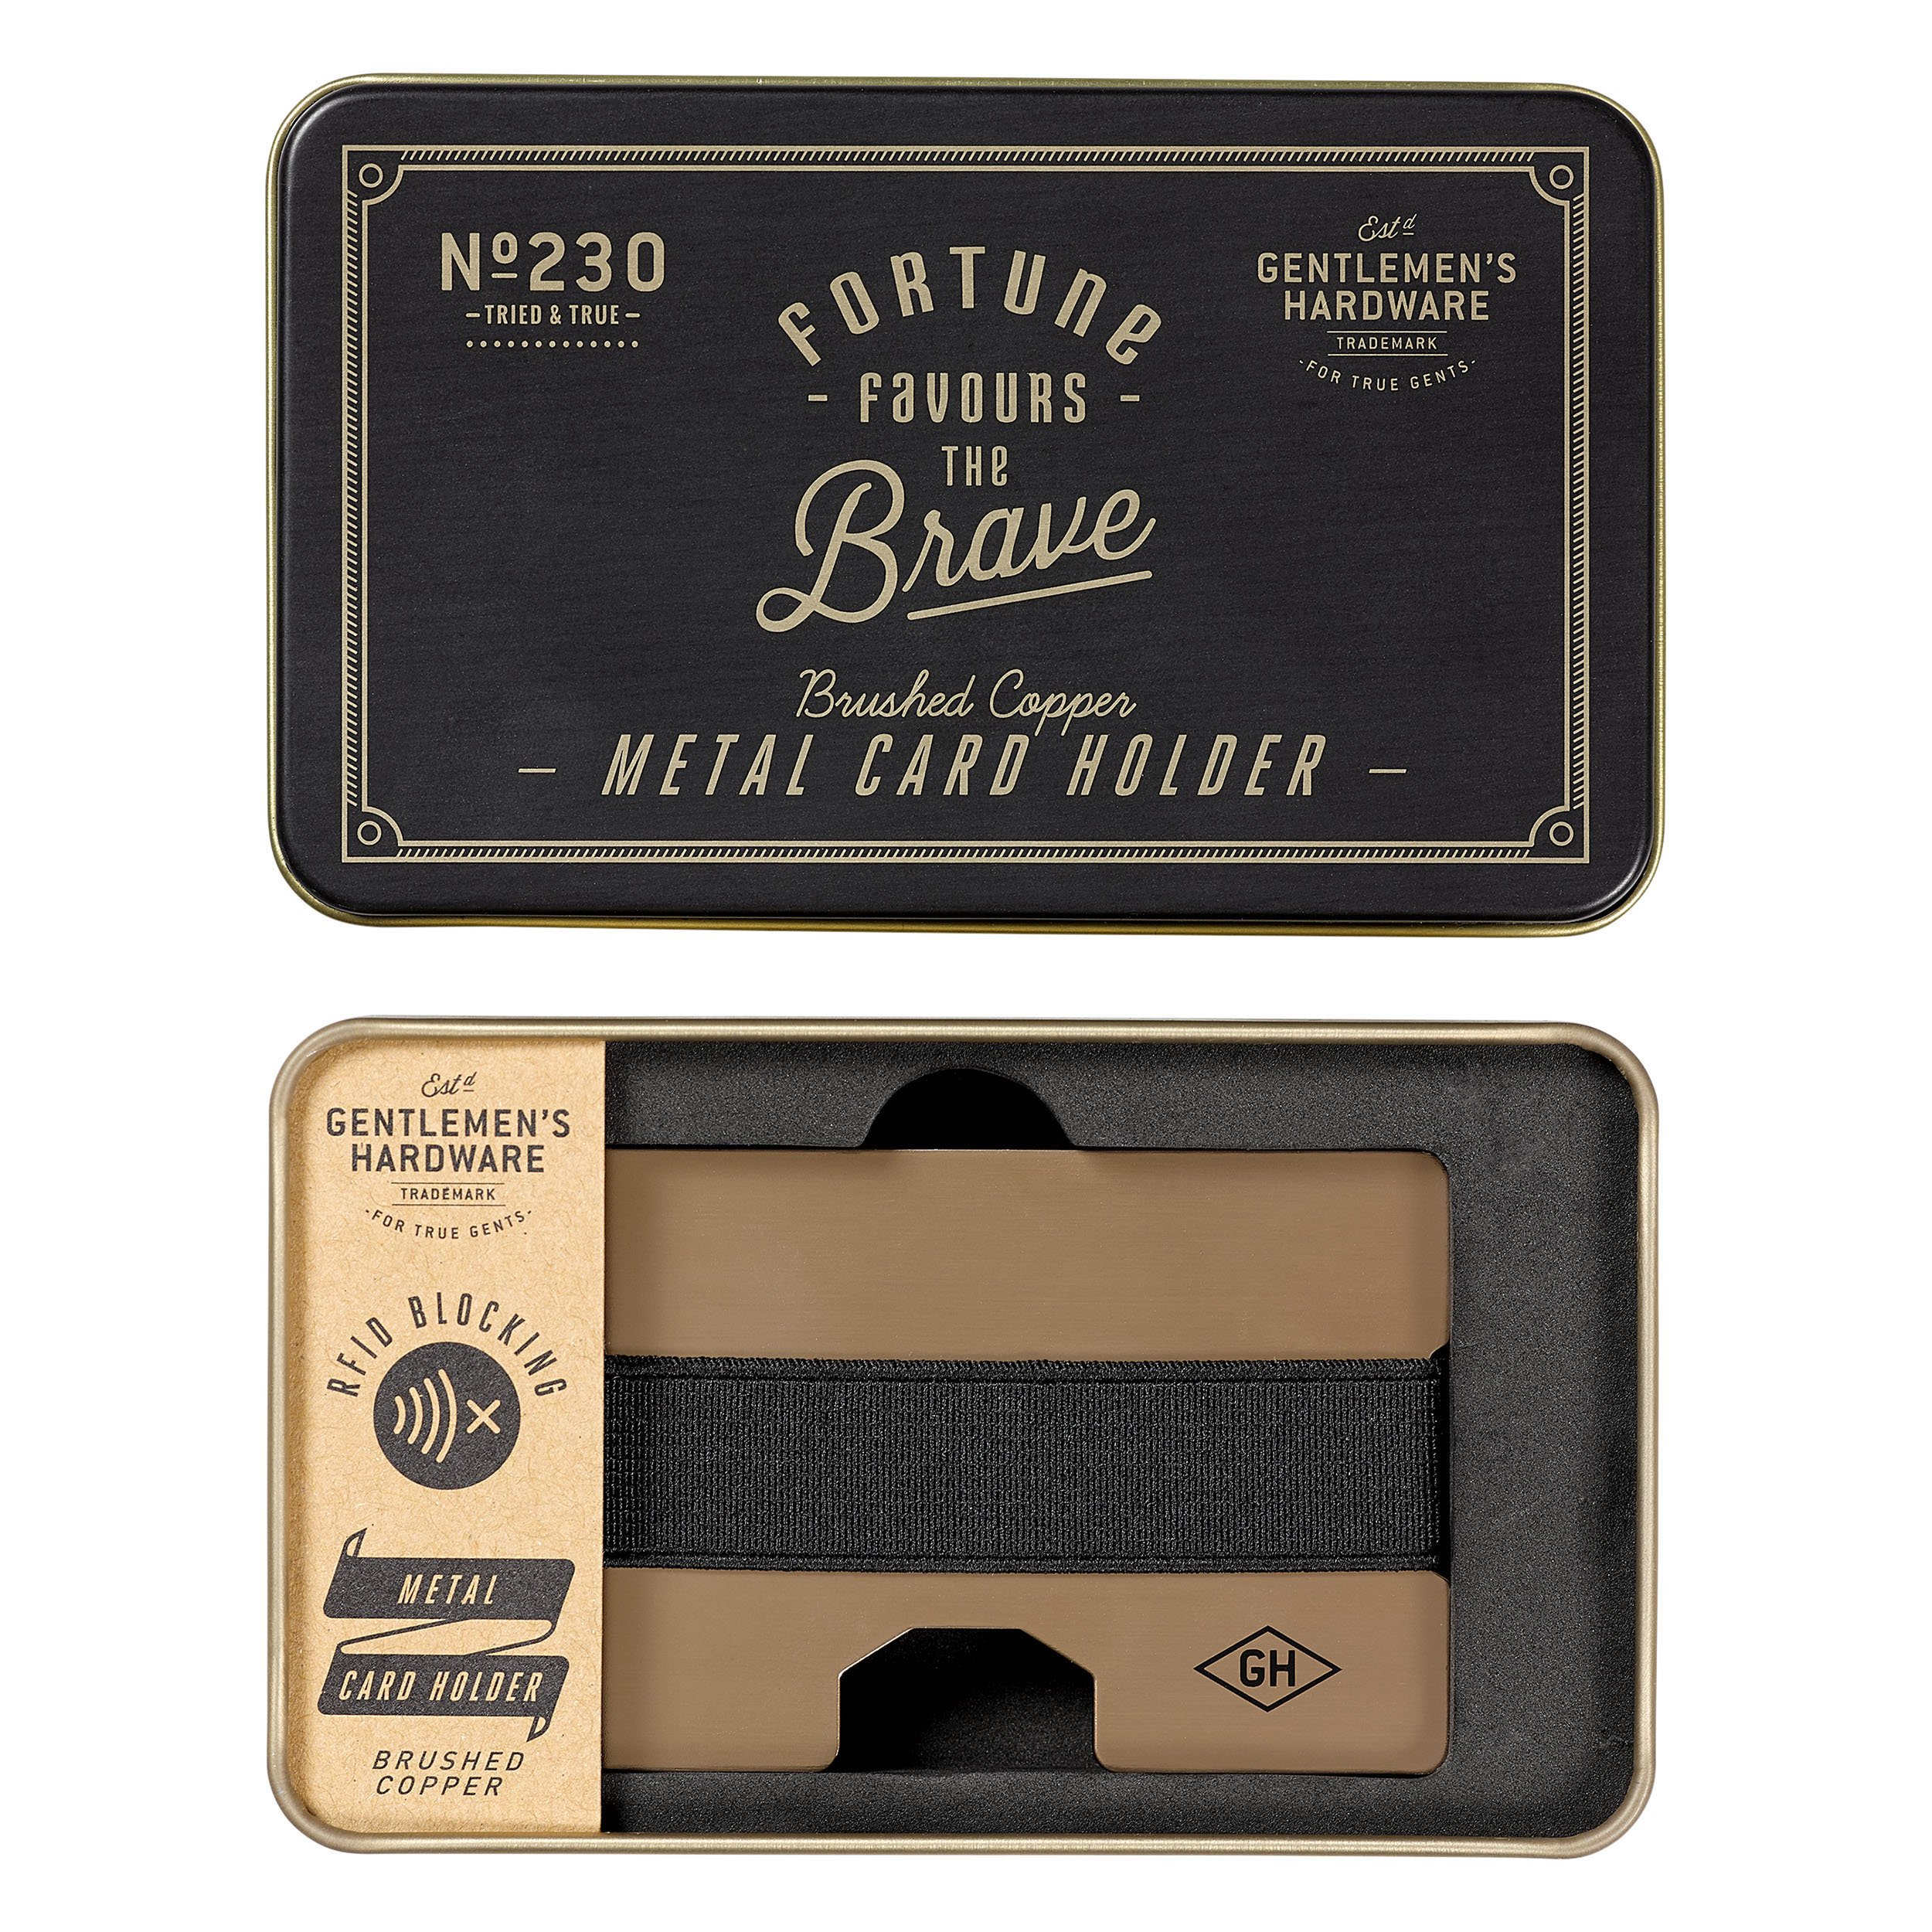 Gentlemen's Hardware Copper Metal Card Holder